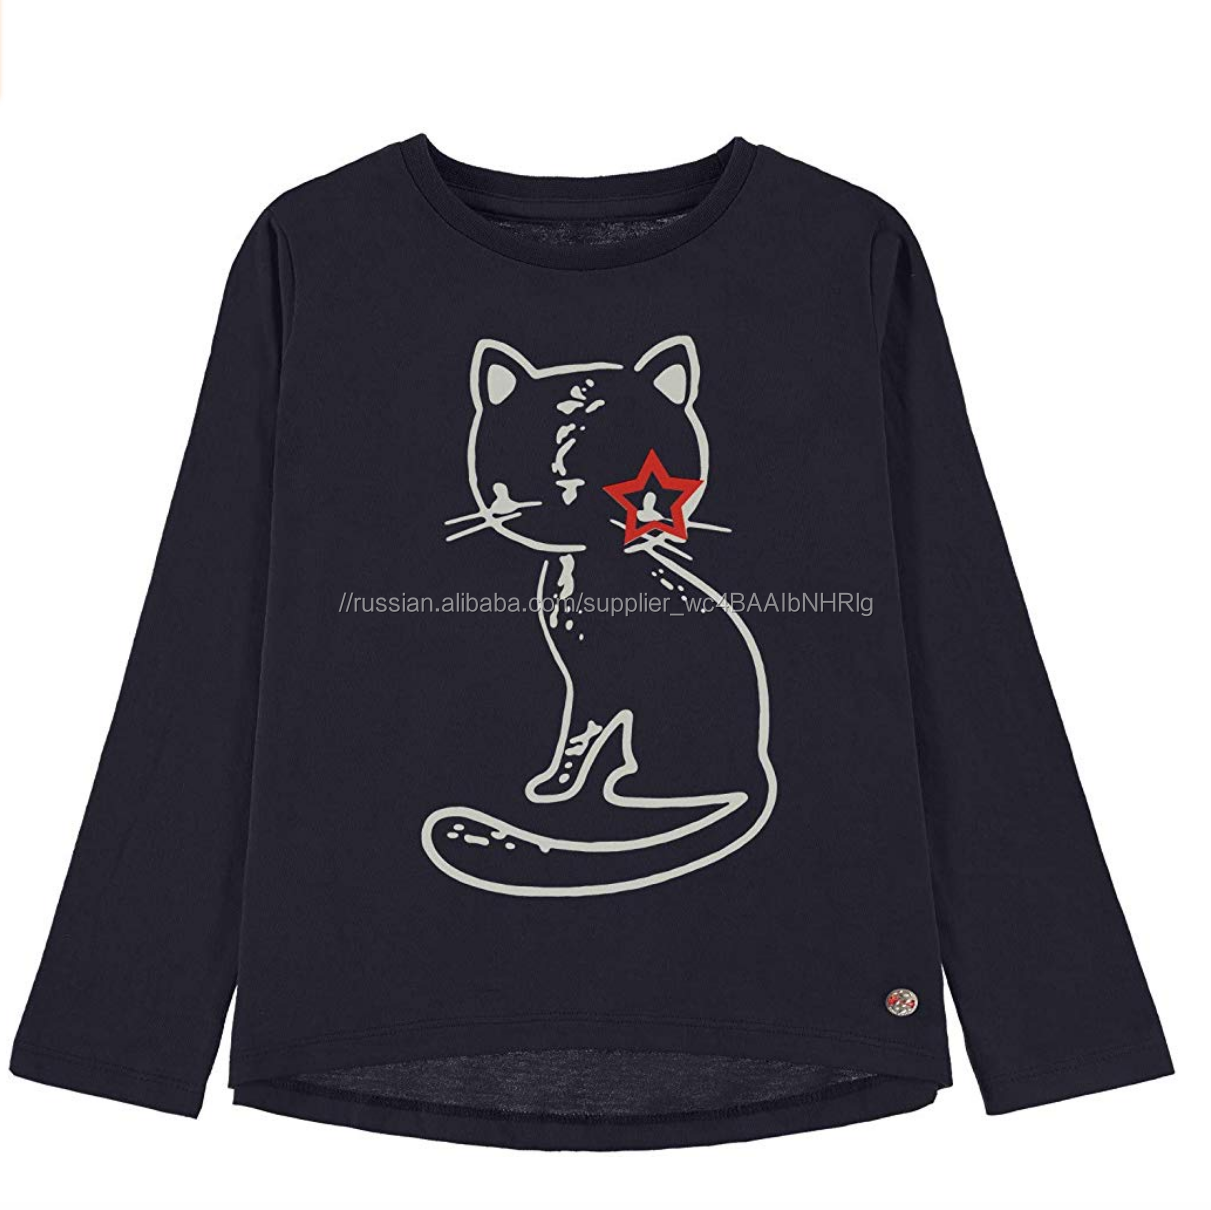 cotton printed children Clothes for ready to wear and screen print kids clothes